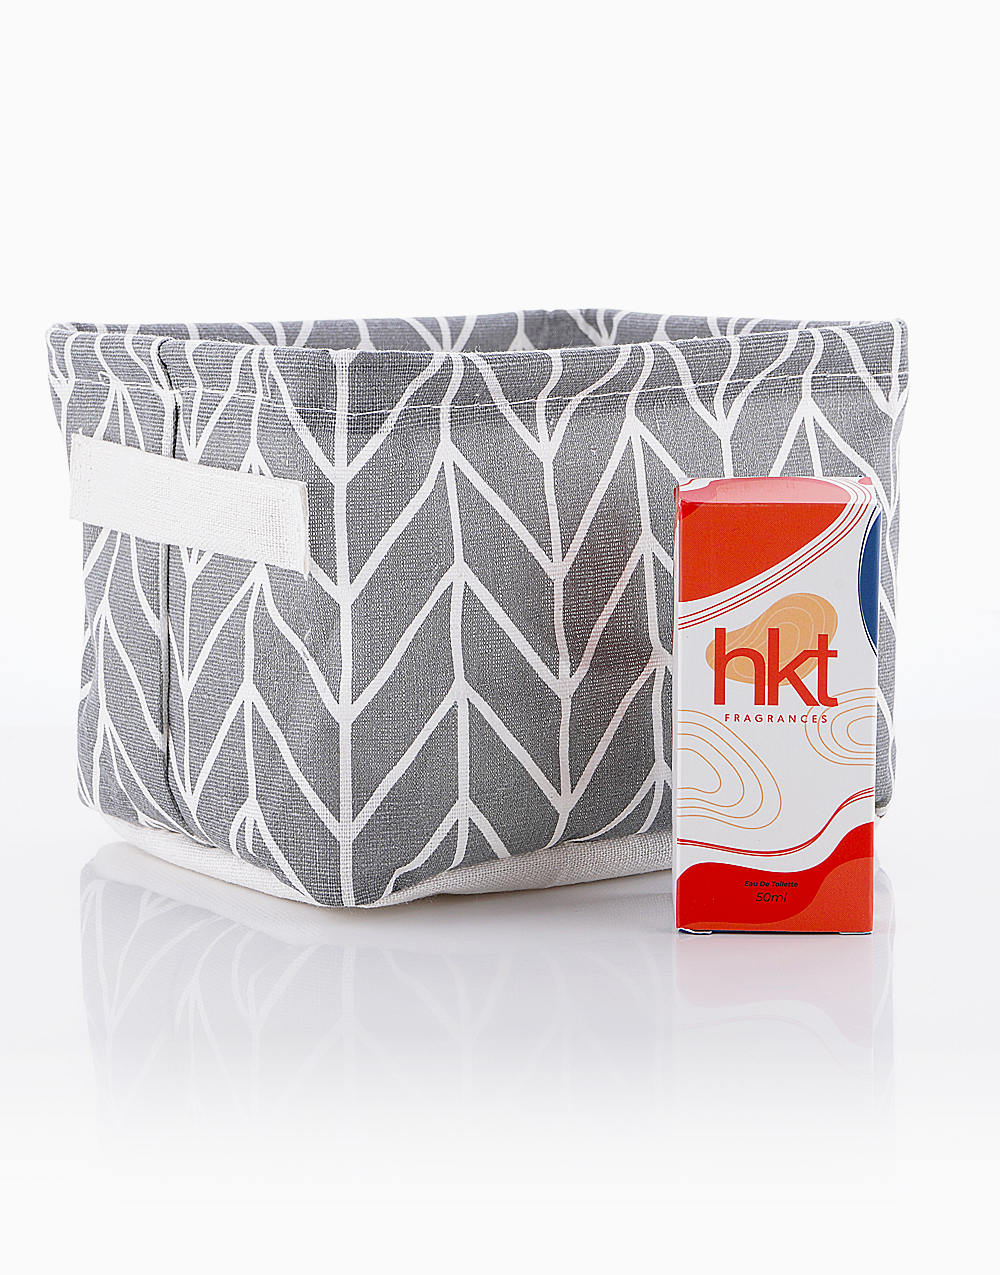 Perfume for Men in Cool Dude + Storage Organizer in Gray by HKT Fragrances